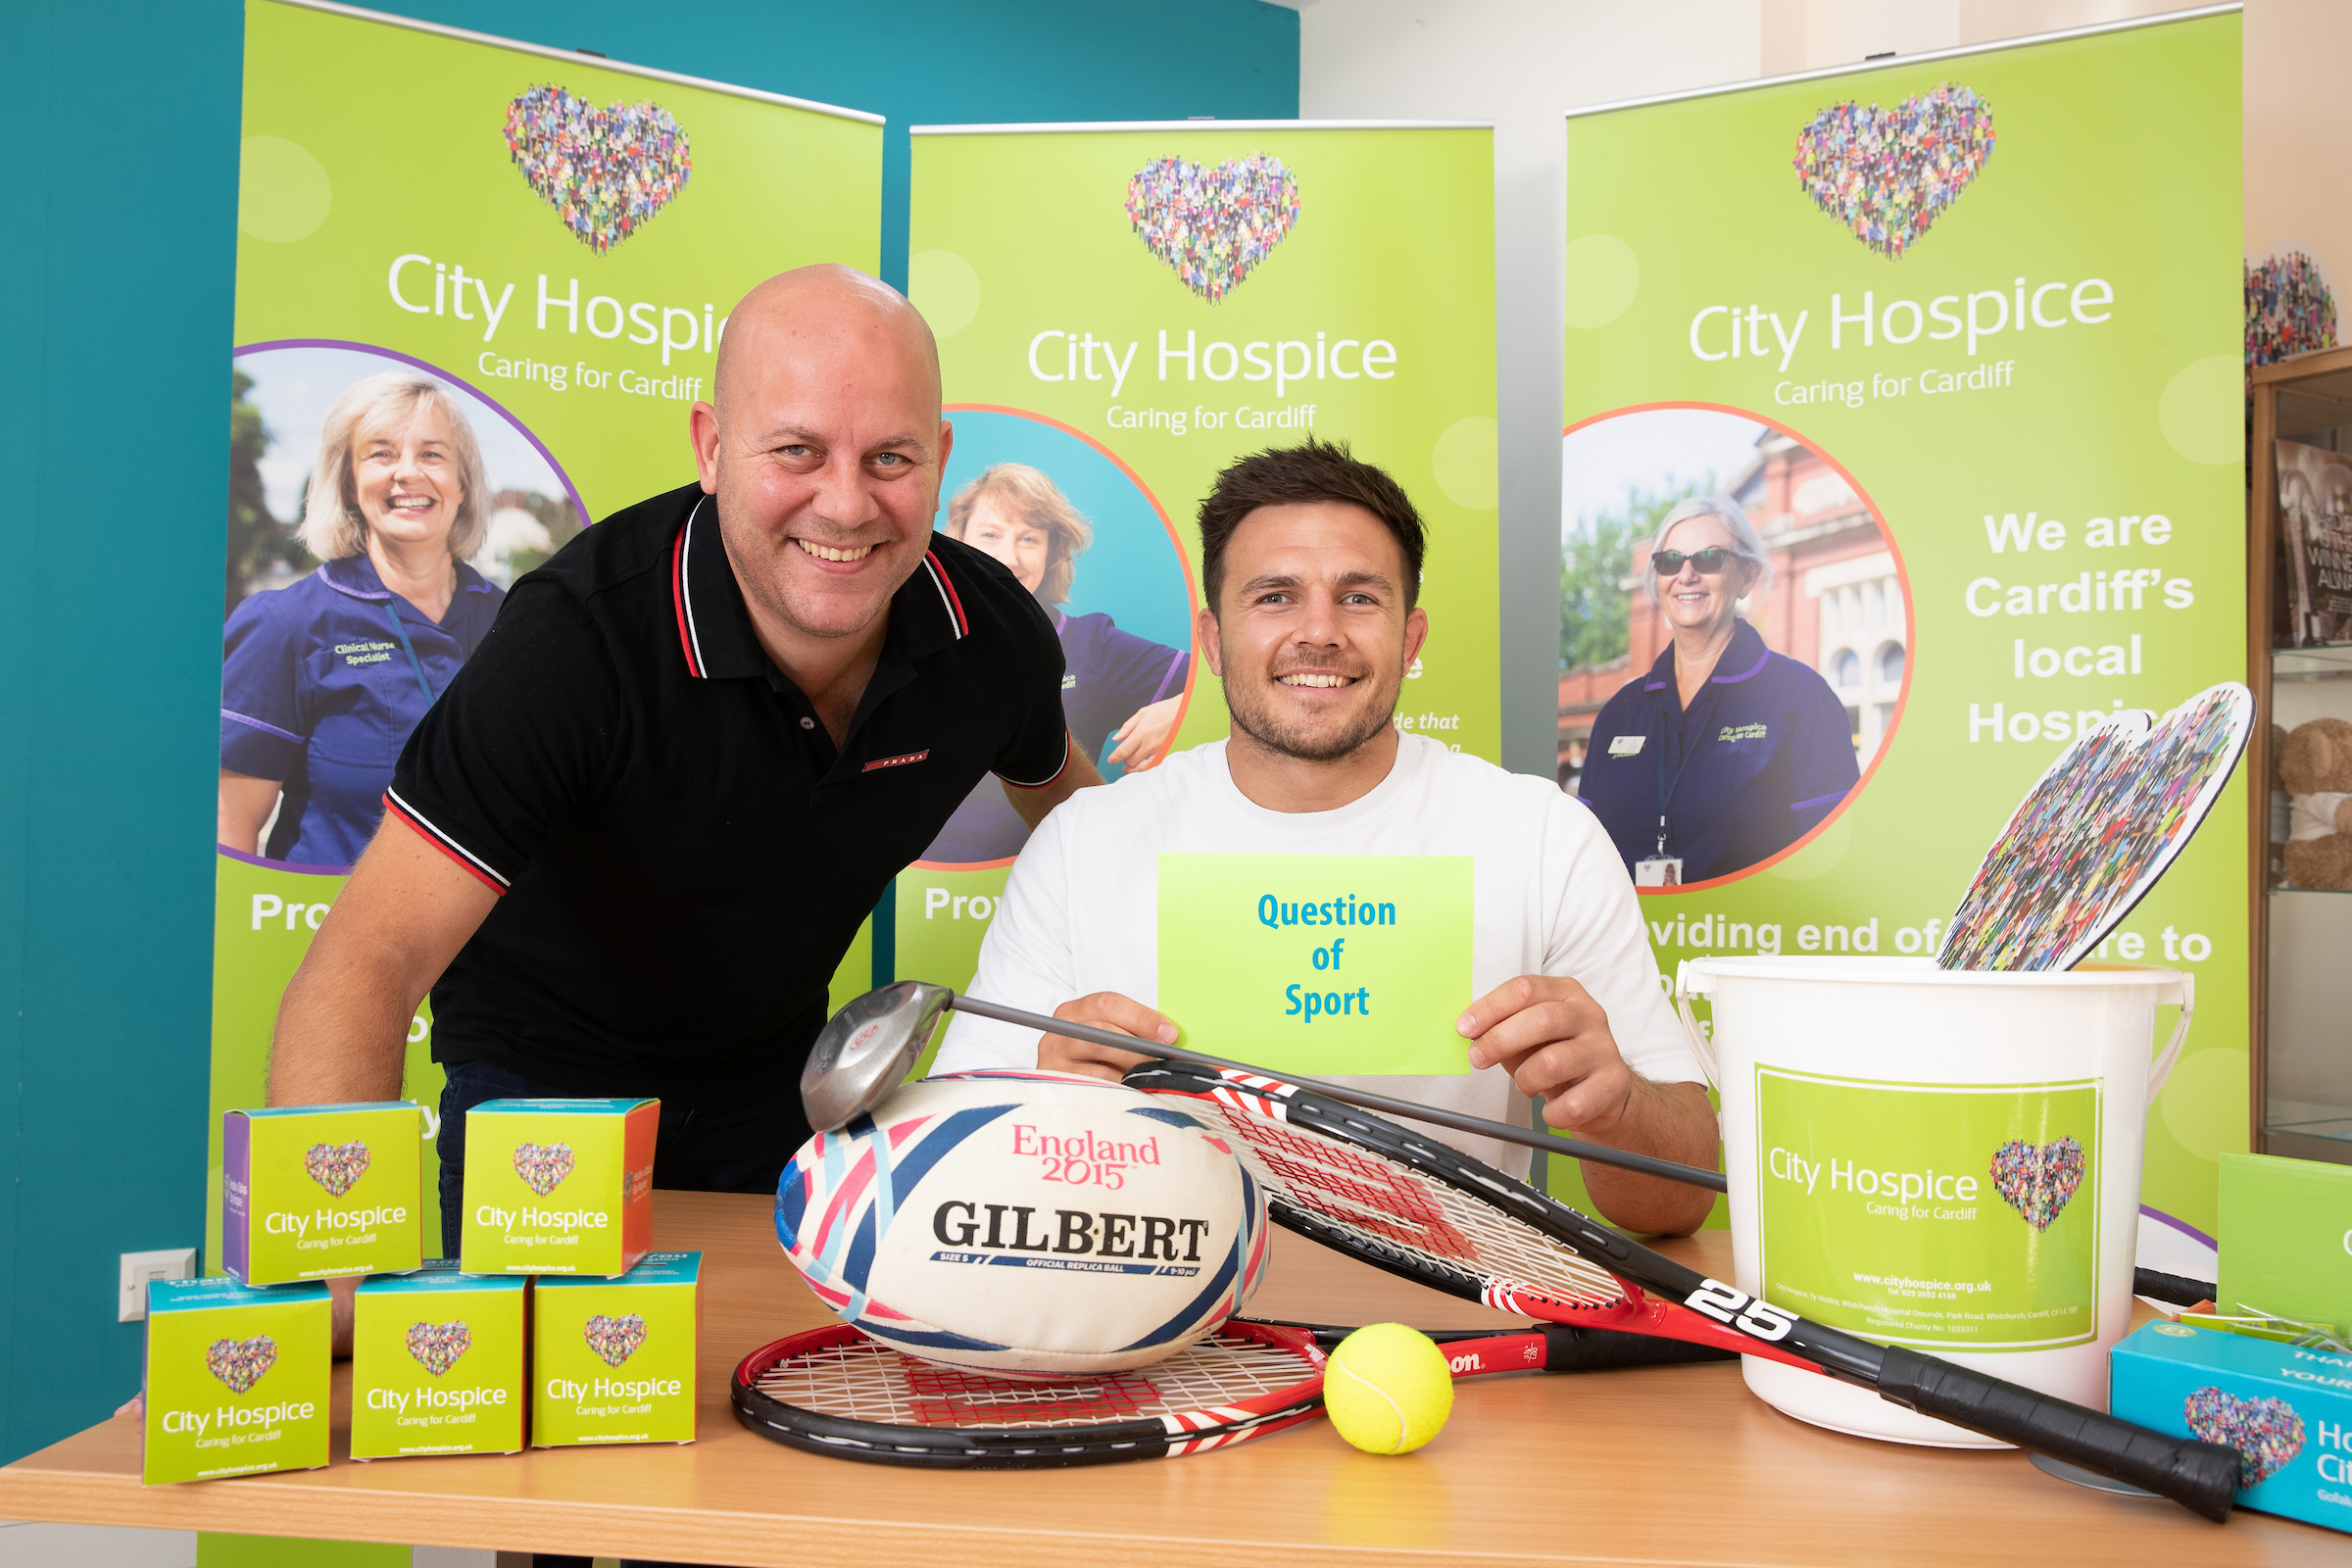 Ellis Jenkins supports City Hospice Question of Sport